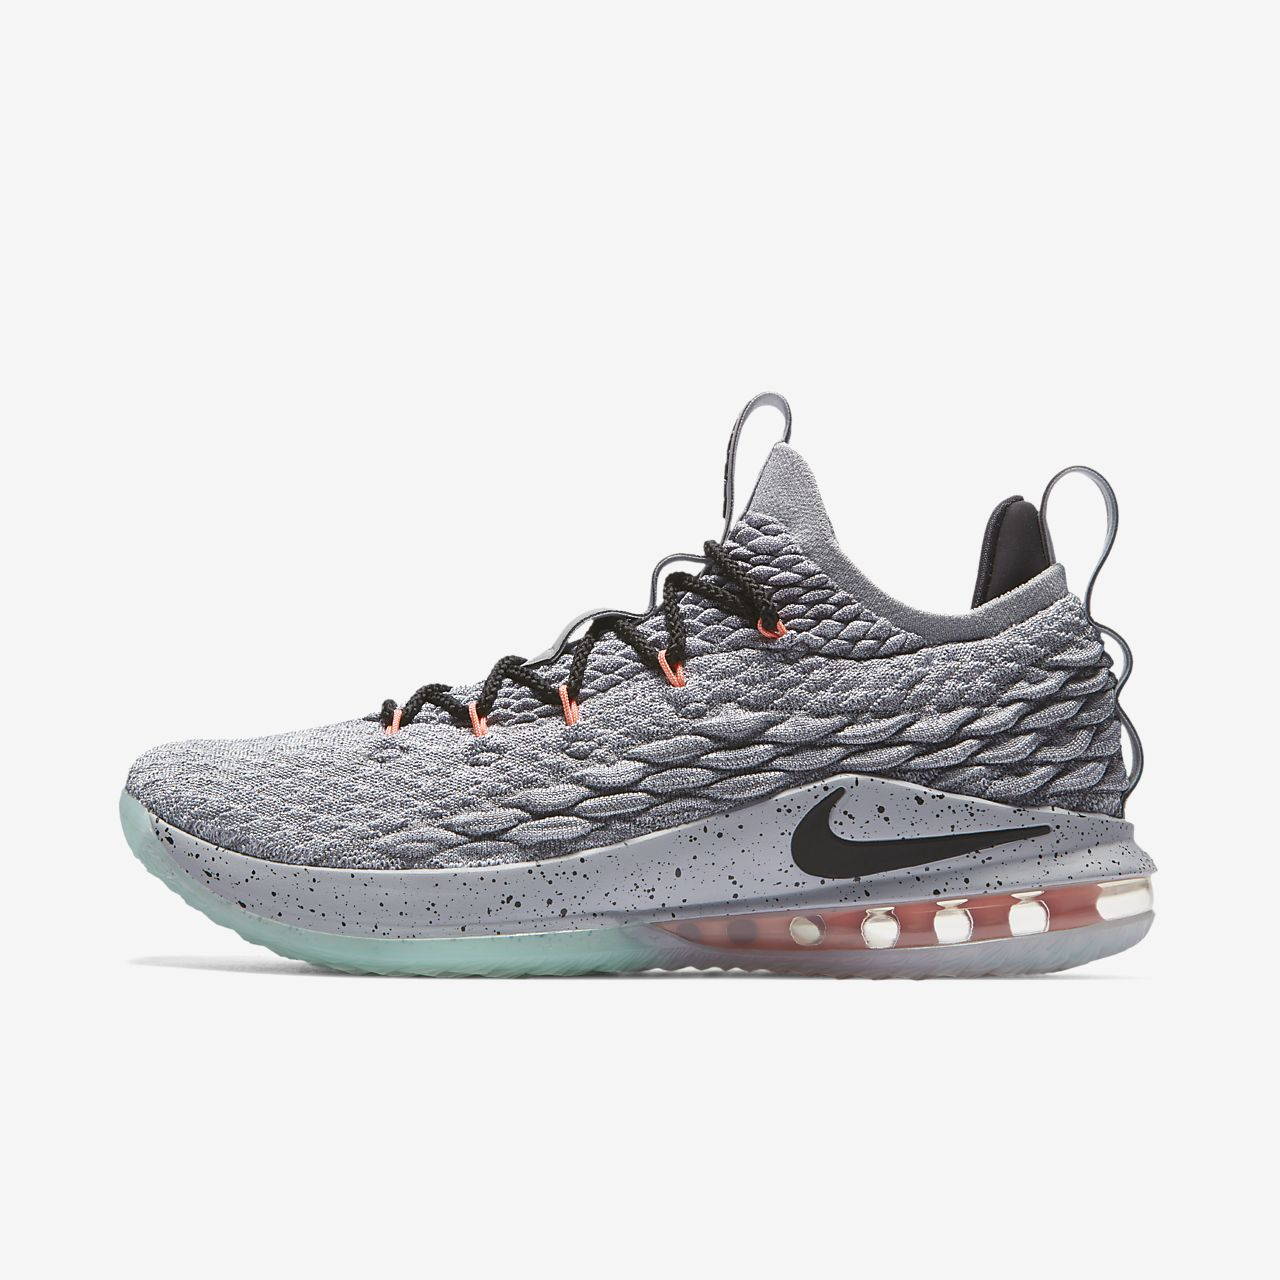 LeBron 15 Low Basketball Shoe